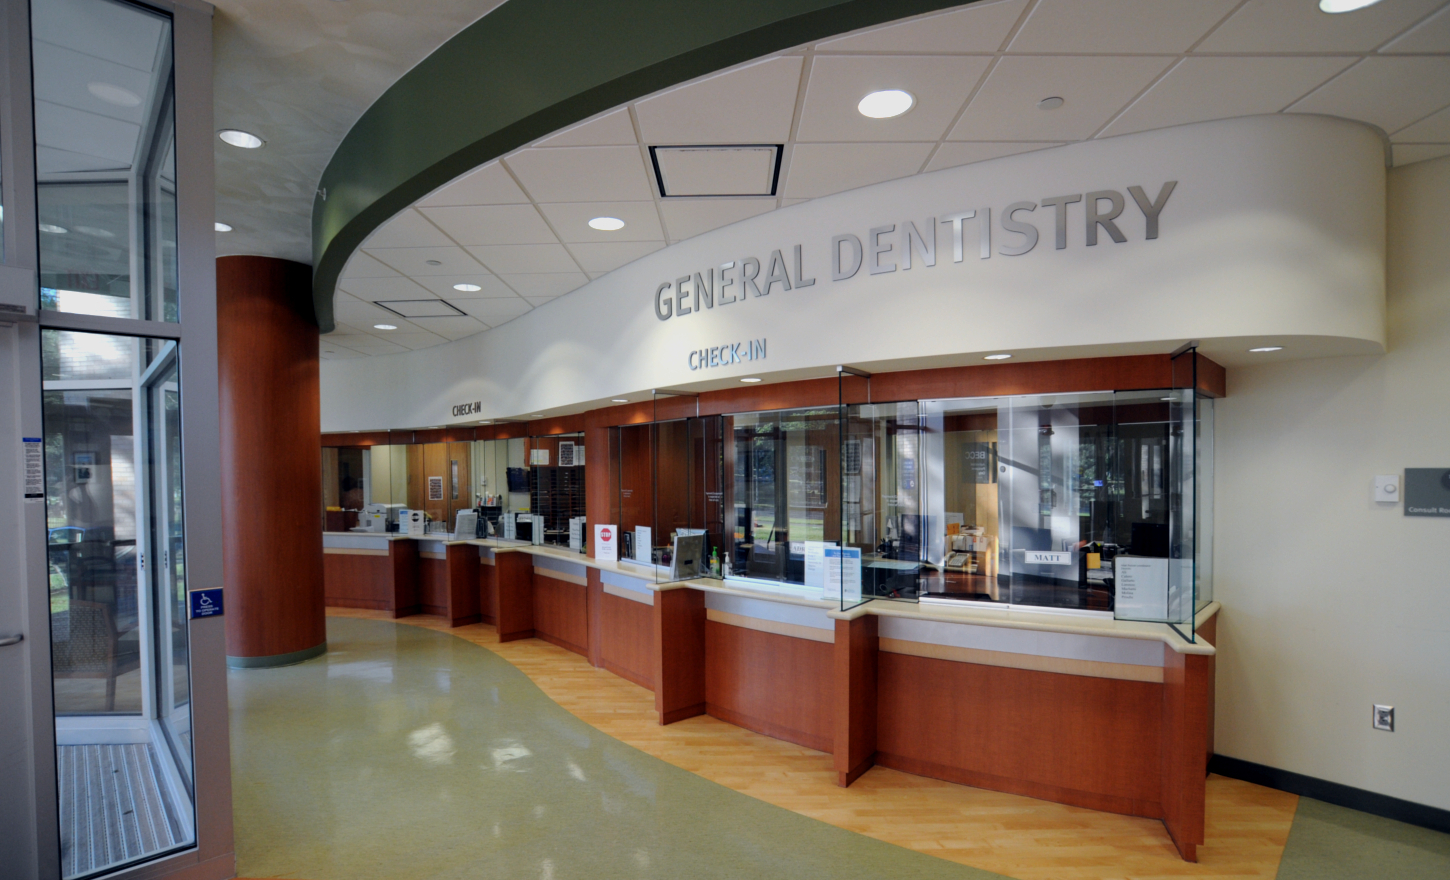 University of Rochester Medical Center Eastman Institute of Oral Health General Dentistry Renovation